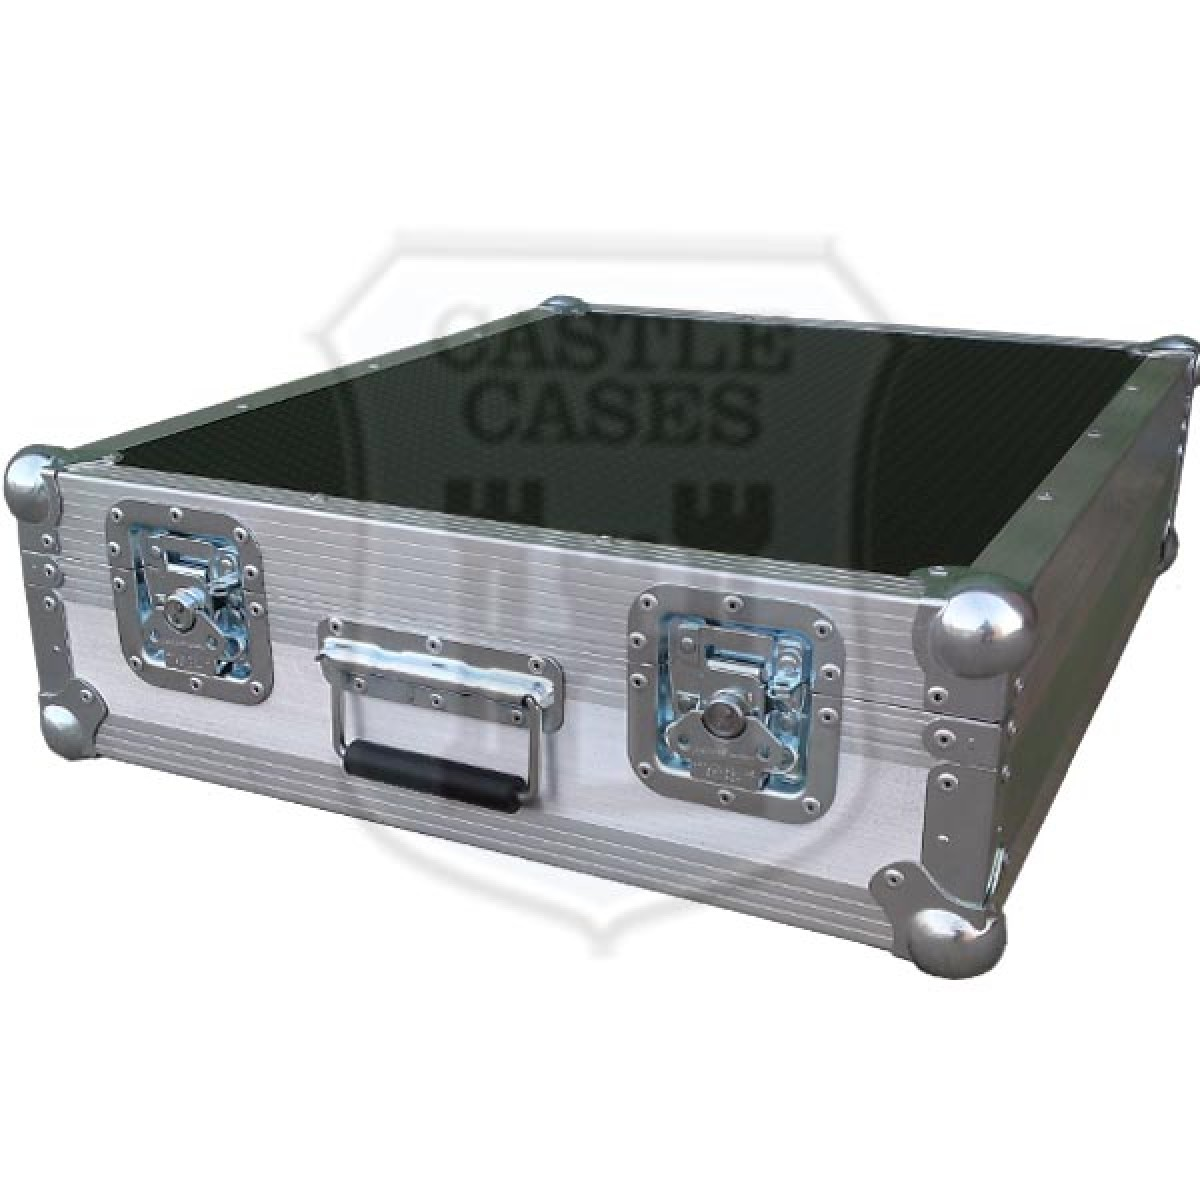 QSC Touchmix 8 Flightcase